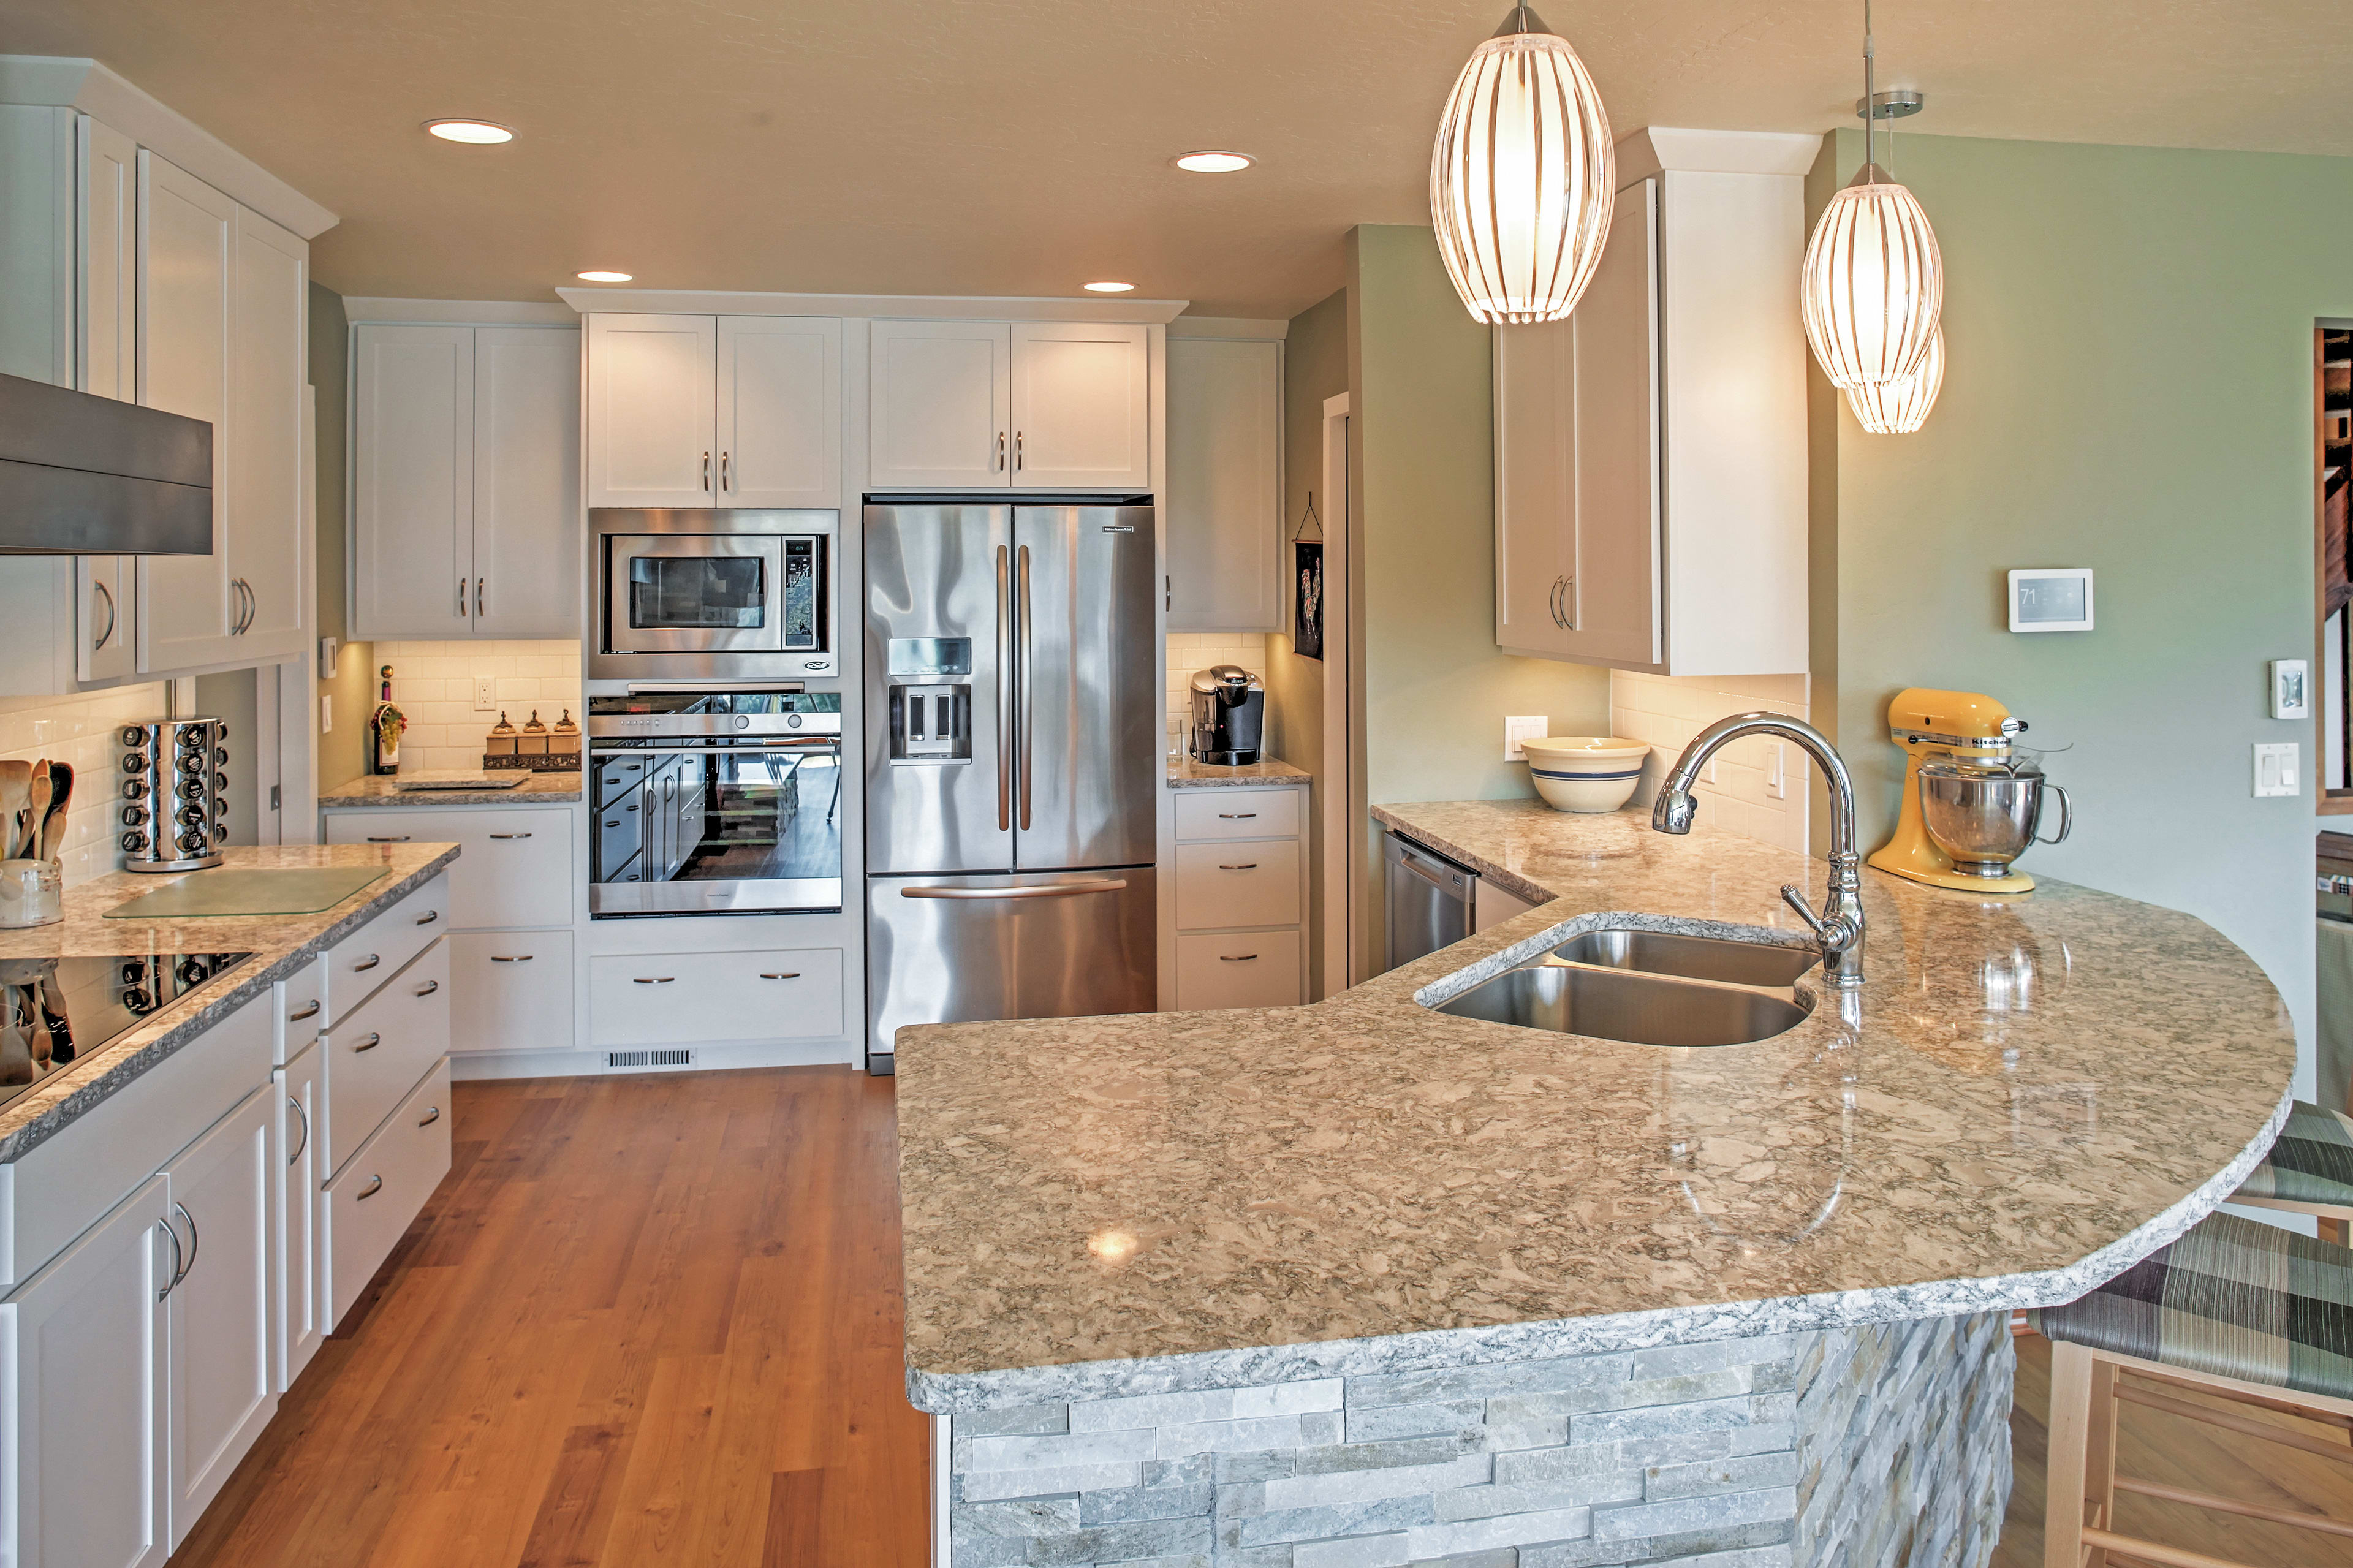 This brand new, state-of-the-art kitchen is fully equipped for you!